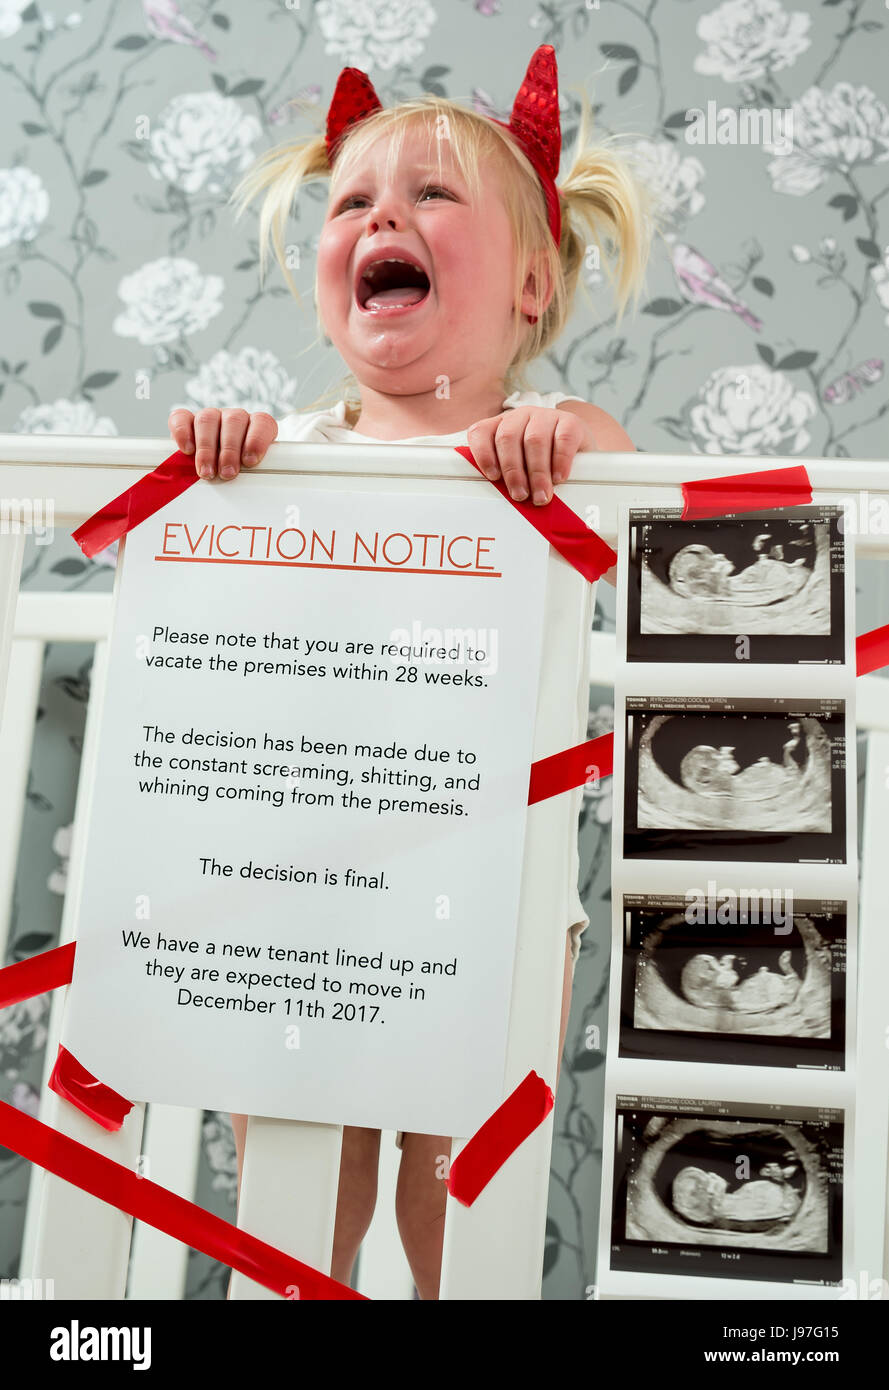 Funny Baby Announcement. A Child Stood Up In The Cot With